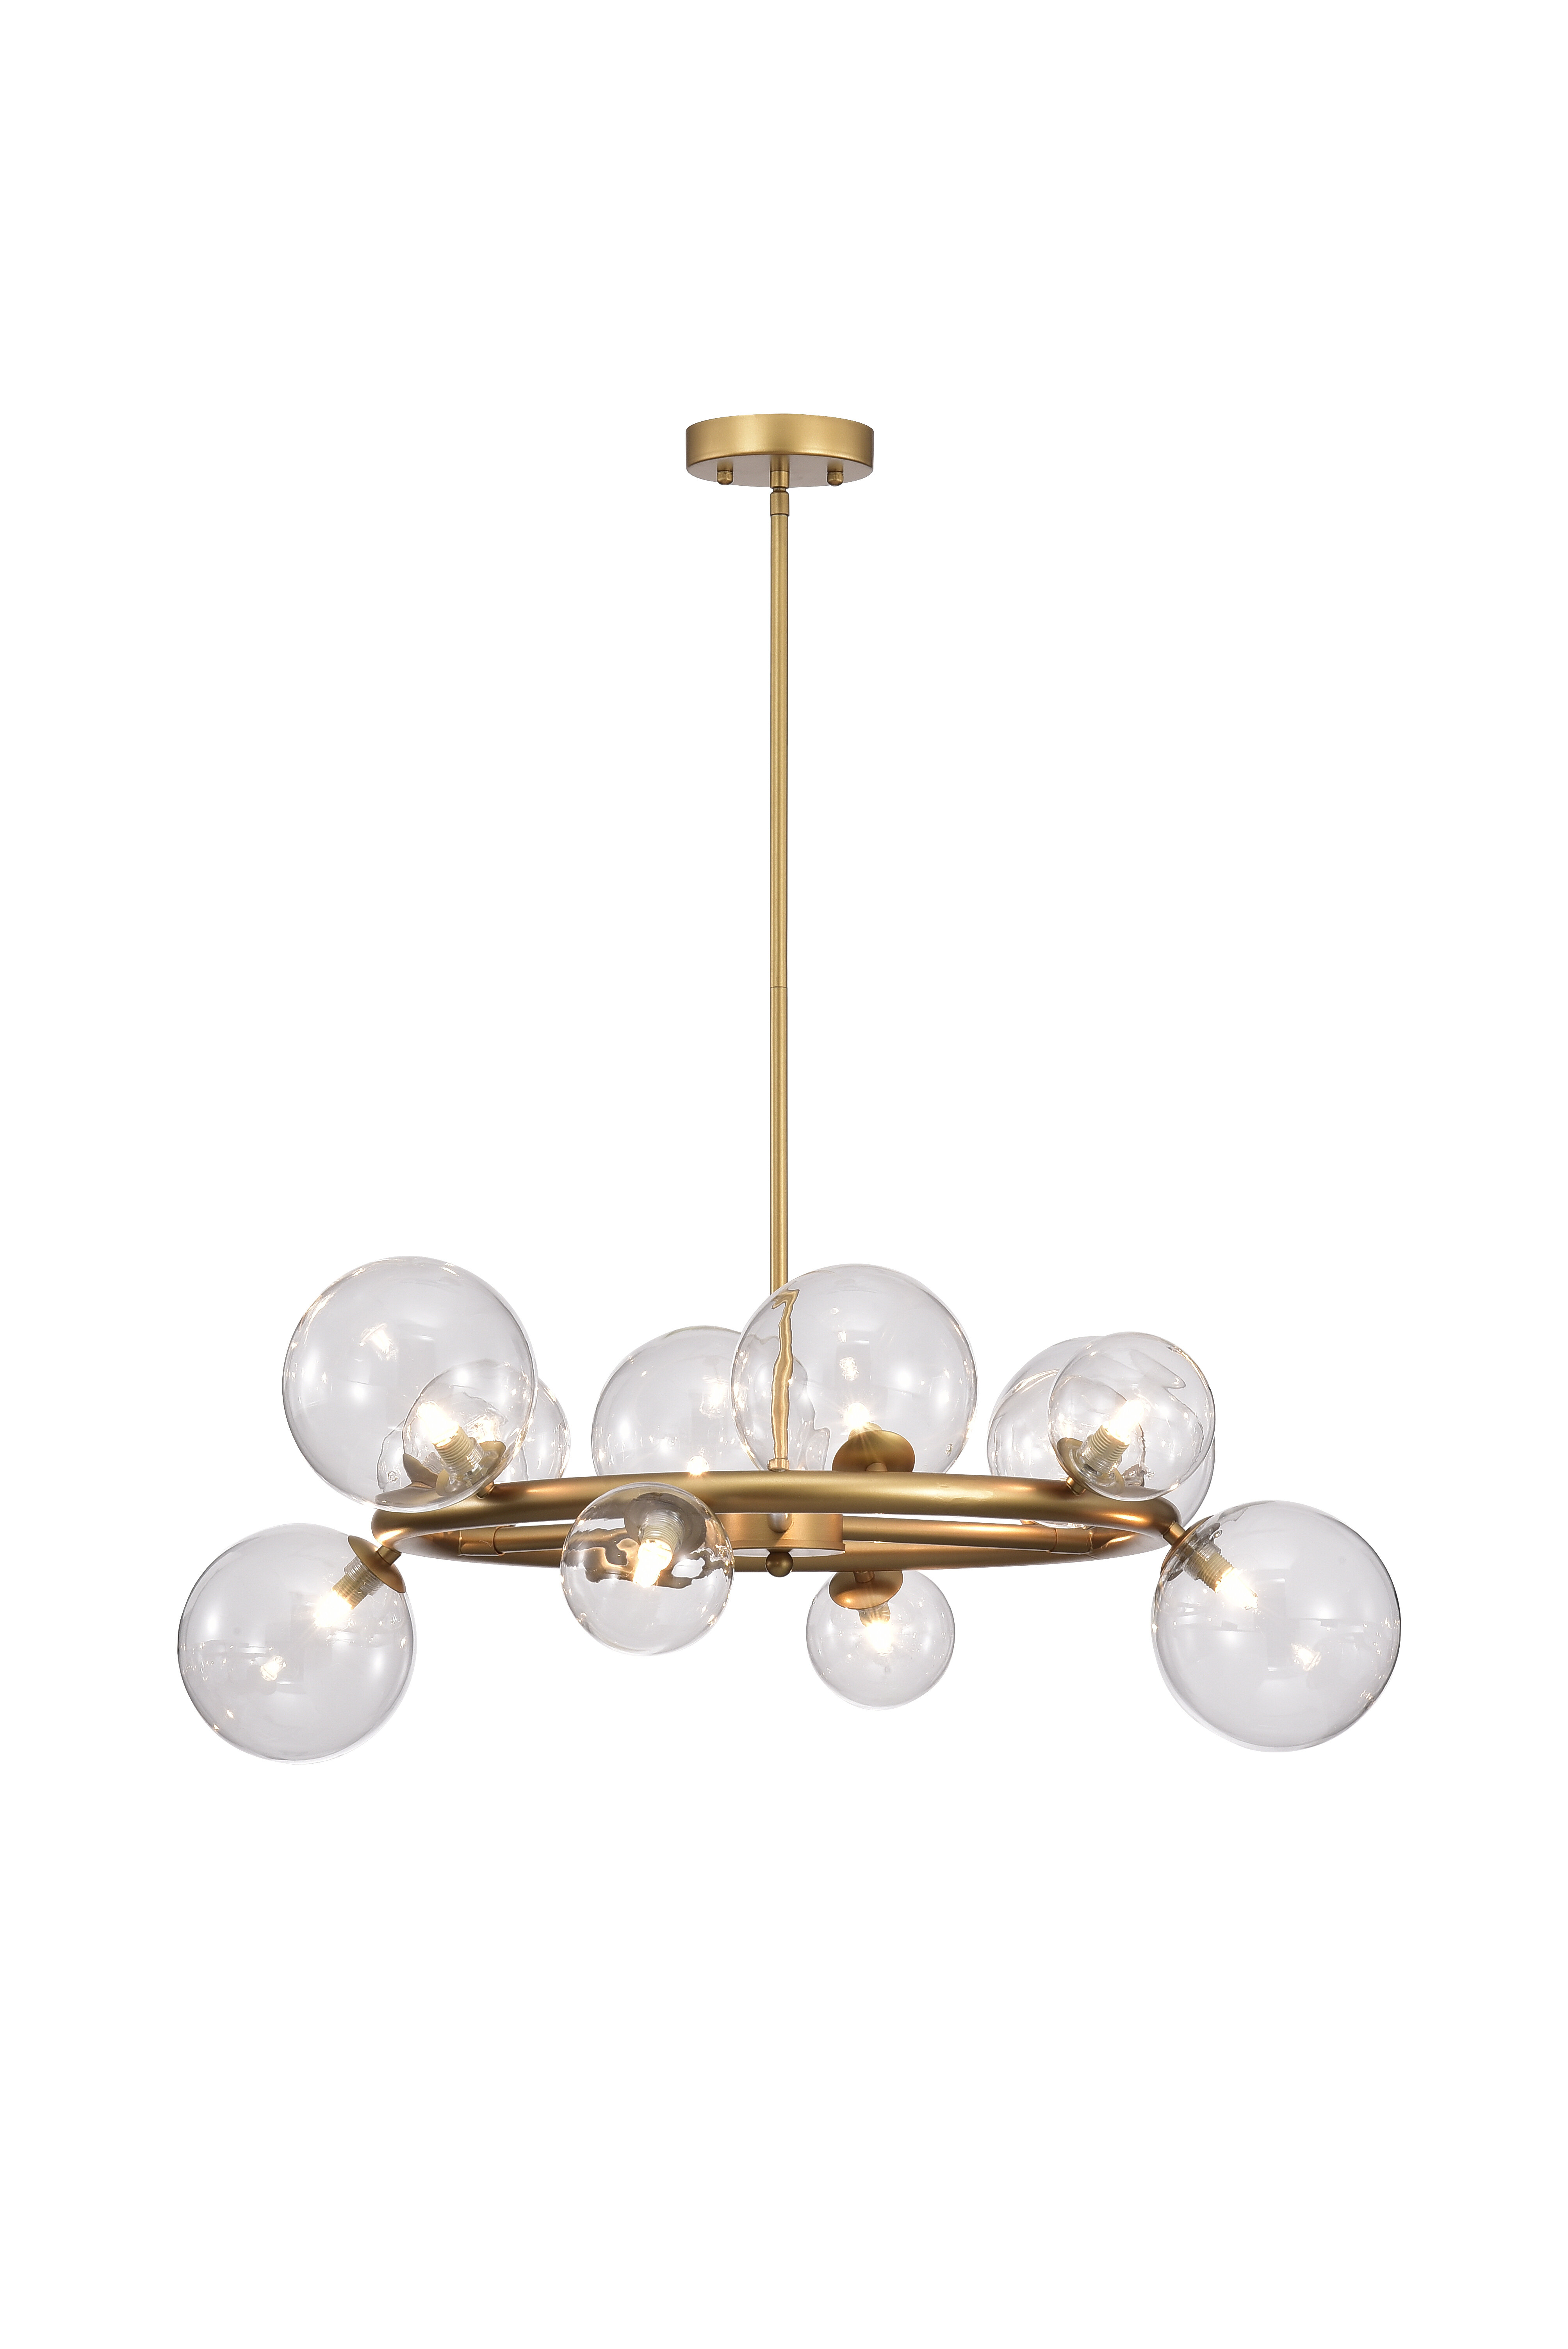 11 George Oliver Chandeliers You Ll Love In 2021 Wayfair